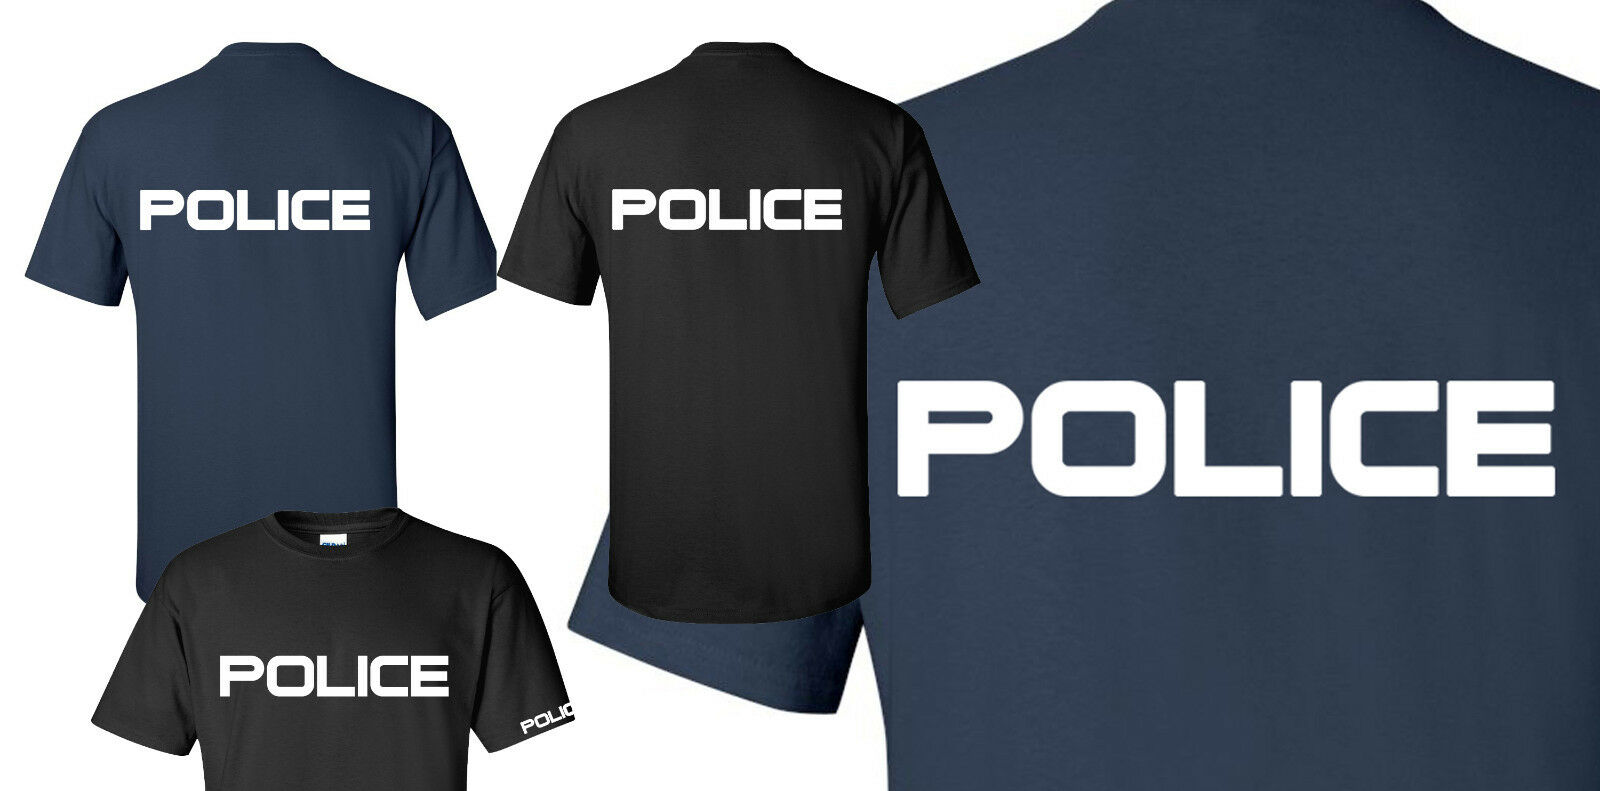 Police T Shirts Law Enforcement Tees For Men S 3xl Police